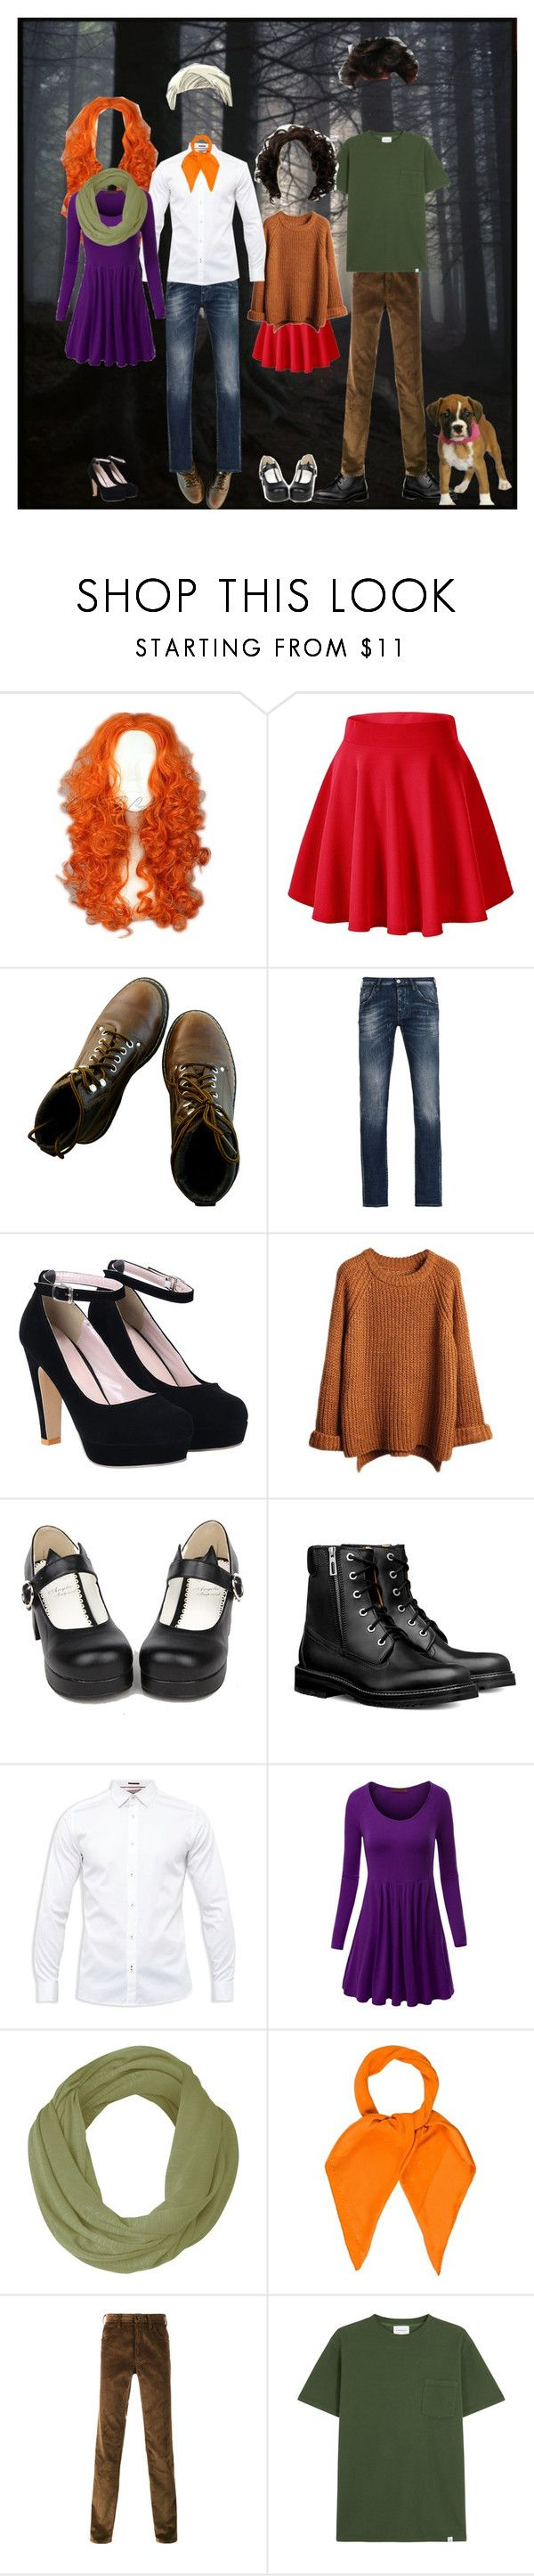 """""""Modern Meddling Kids"""" by deathrose394 ❤ liked on Polyvore featuring Merida, Armani Jeans, Ted Baker, WithChic, Louis Vuitton, Prada, Norse Projects and modern"""